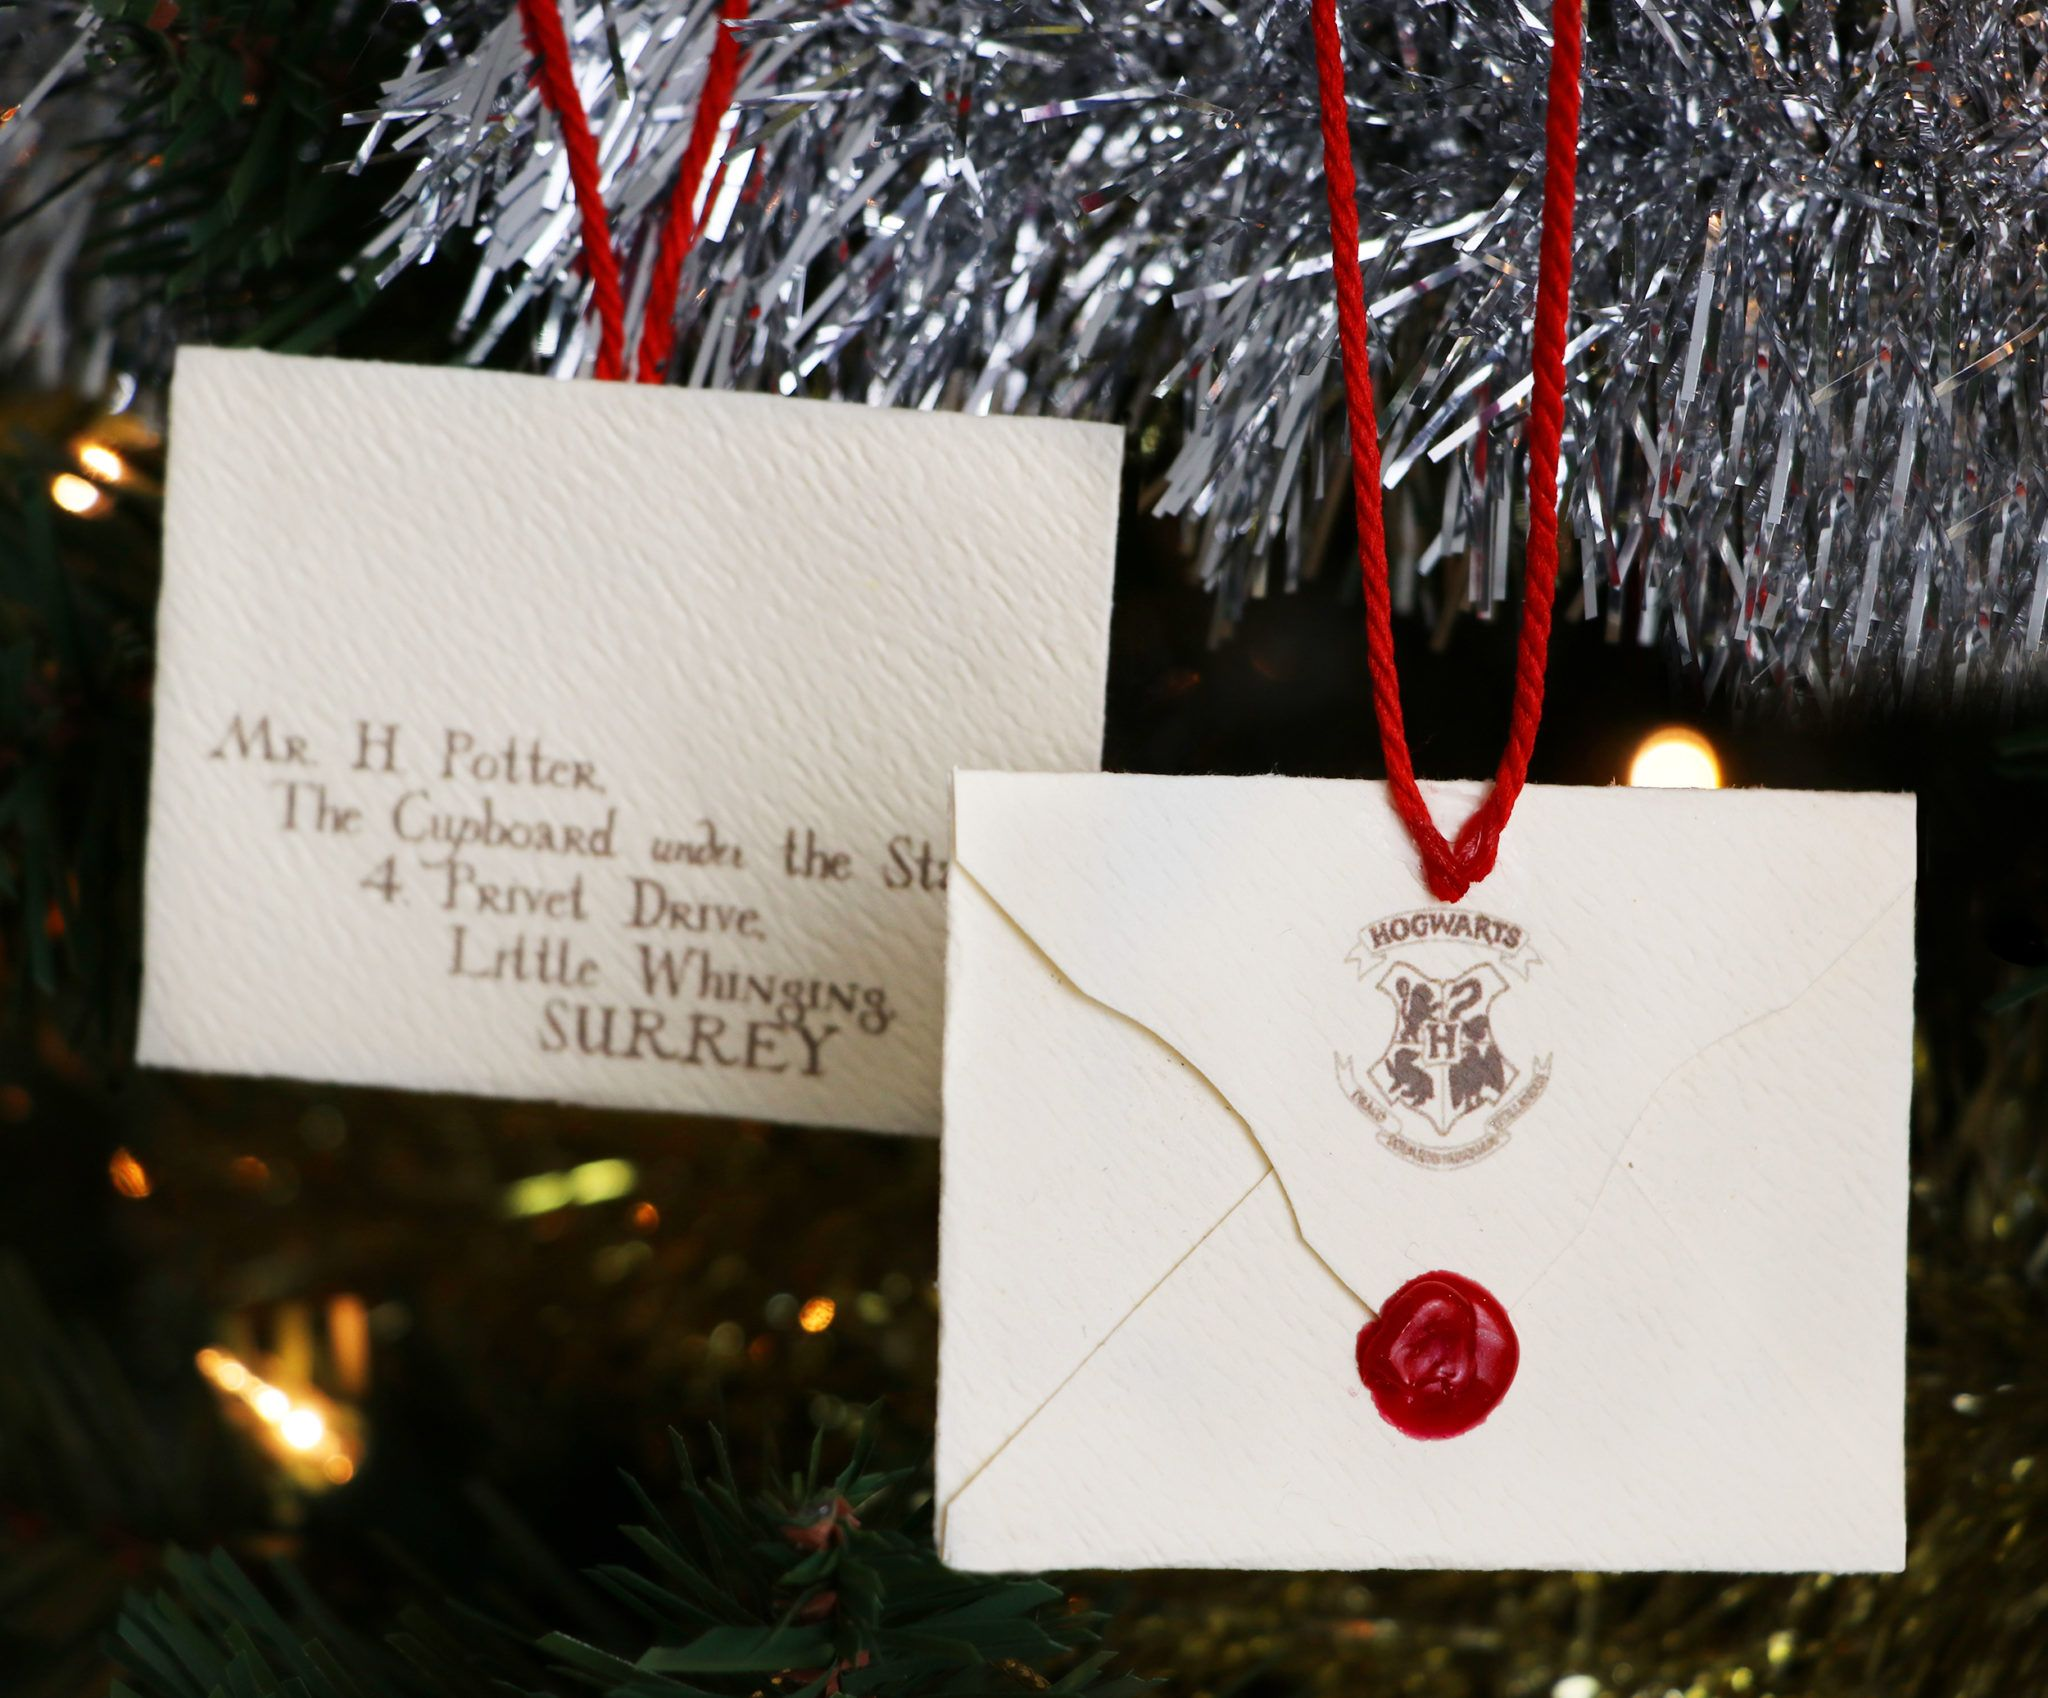 Diy Miniature Hogwarts Letter Christmas Tree Ornament Harry Potter Holida Harry Potter Christmas Ornaments Harry Potter Christmas Harry Potter Christmas Tree